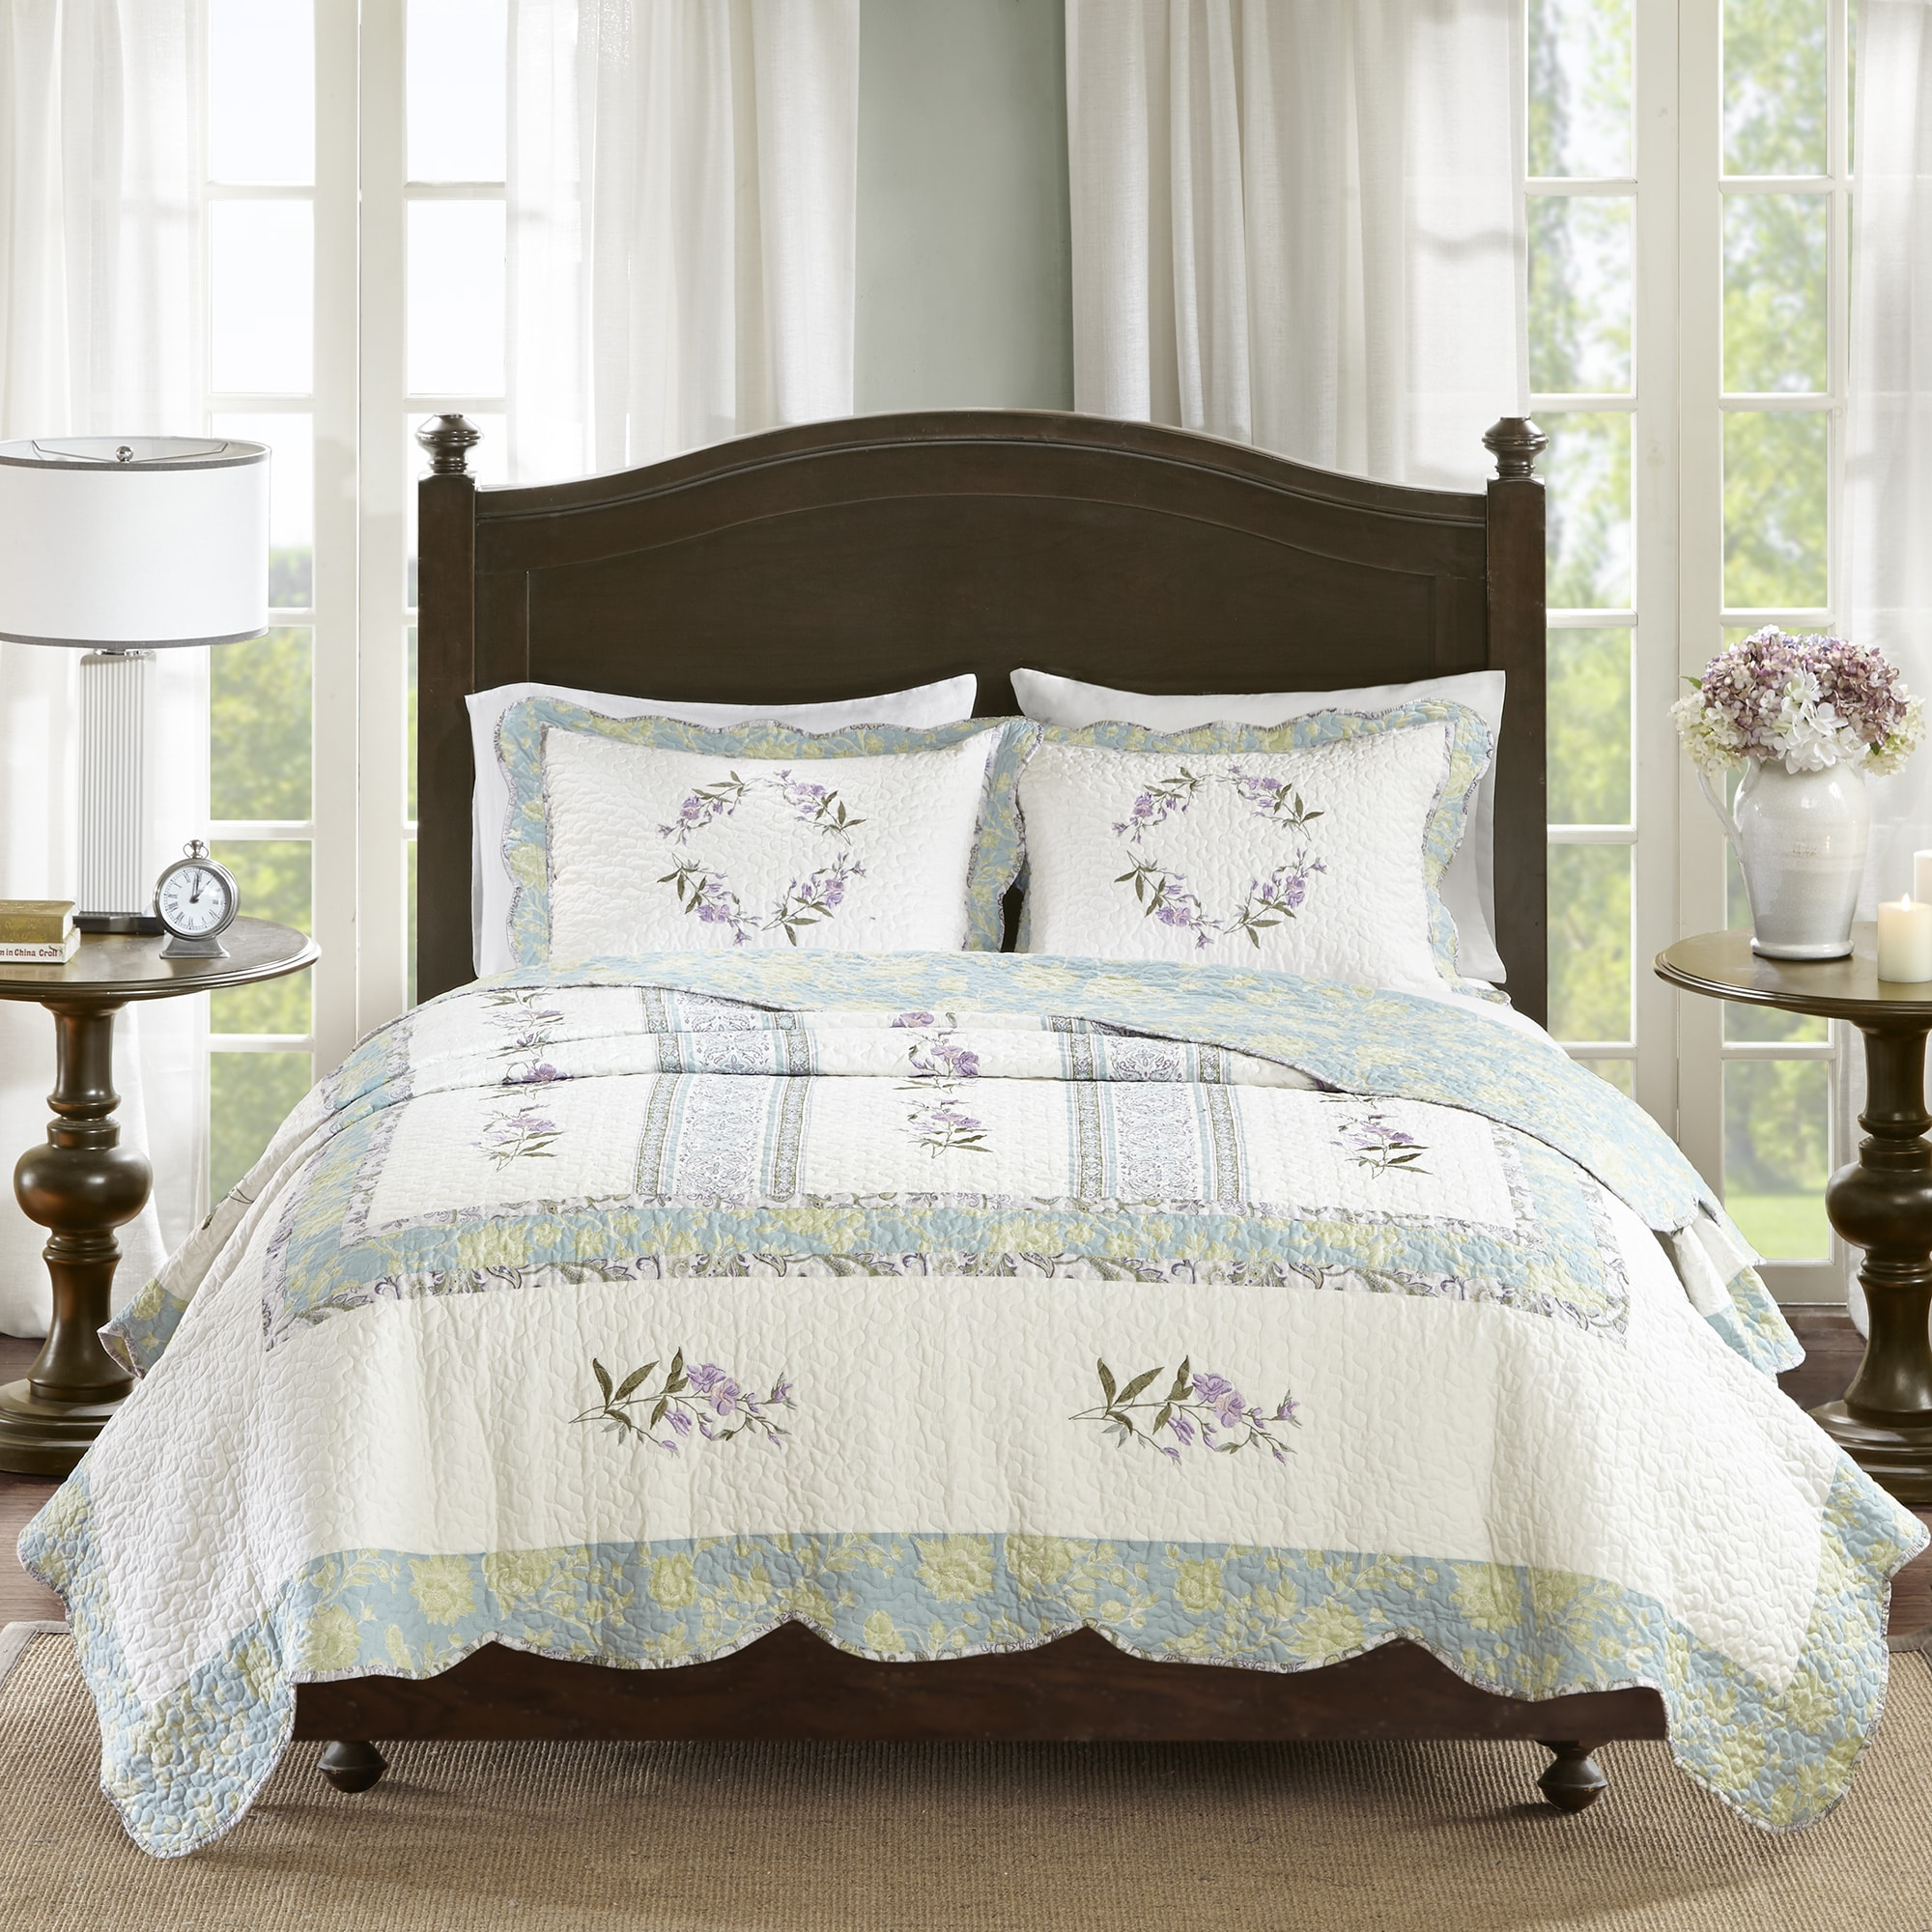 quilt harry bethan egg quilted limited expand corry duck prd bedspread